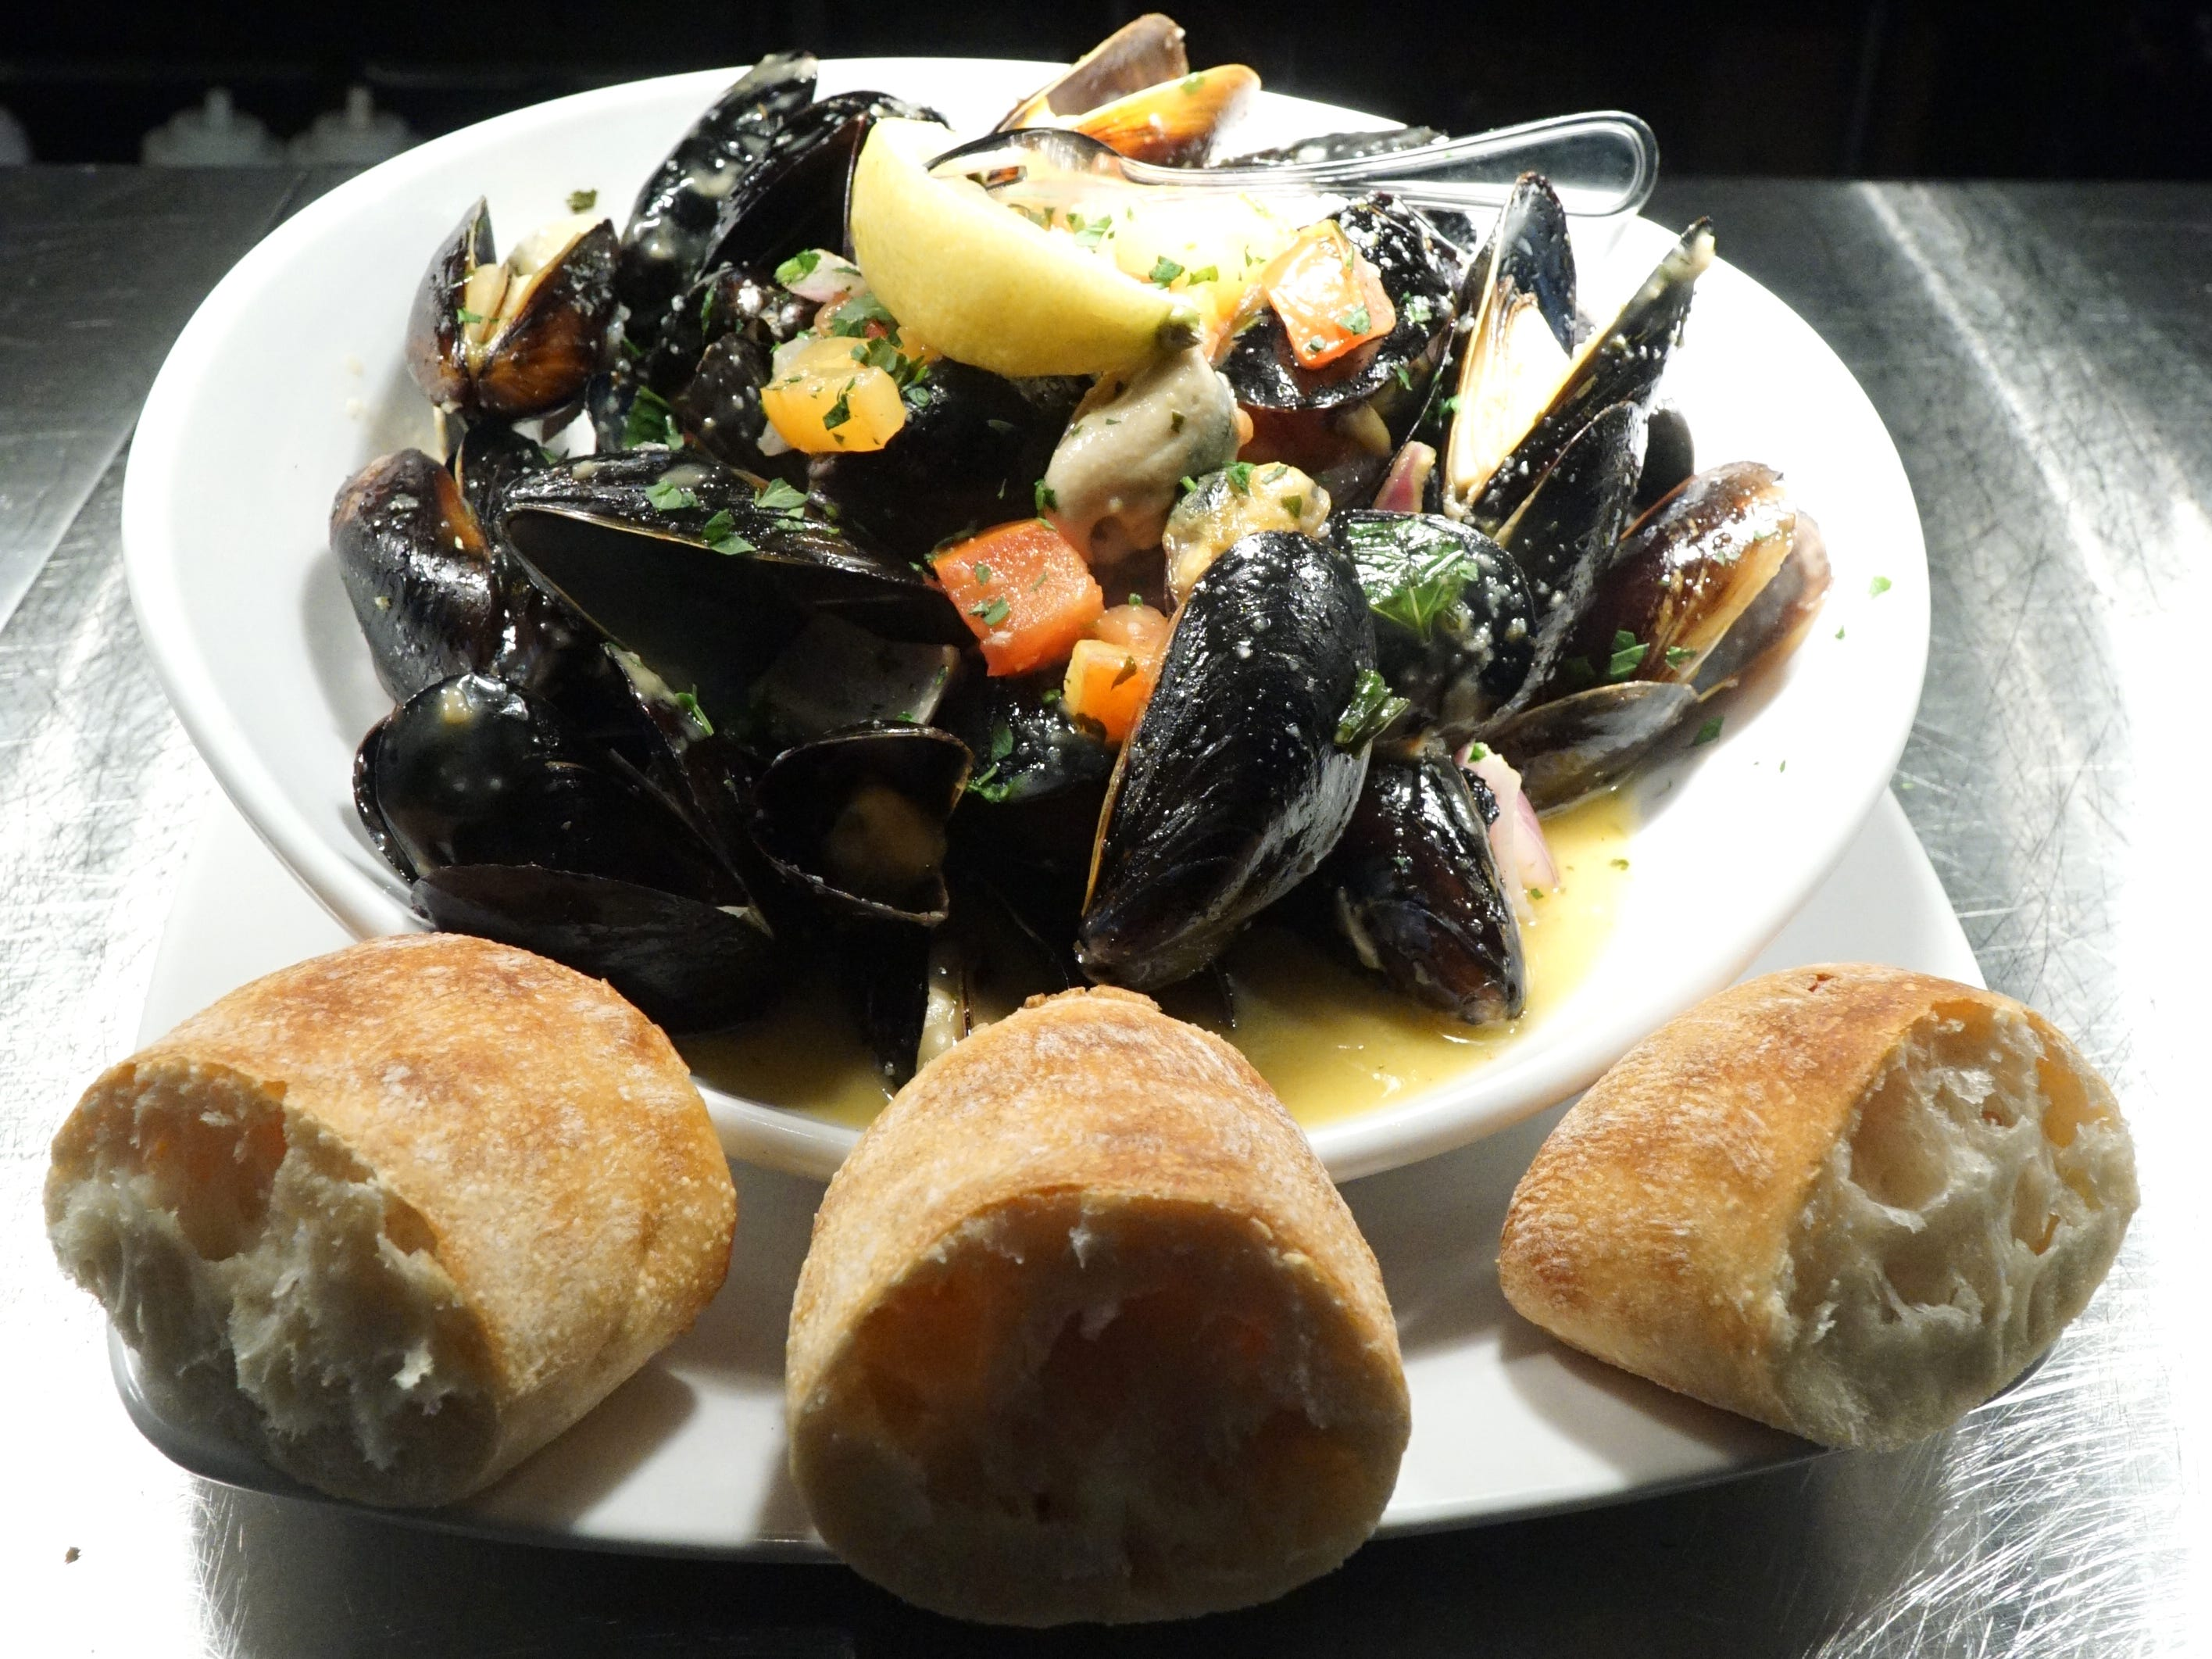 Sedona Taphouse's PEI mussels with sauteed vegetables and butter broth.